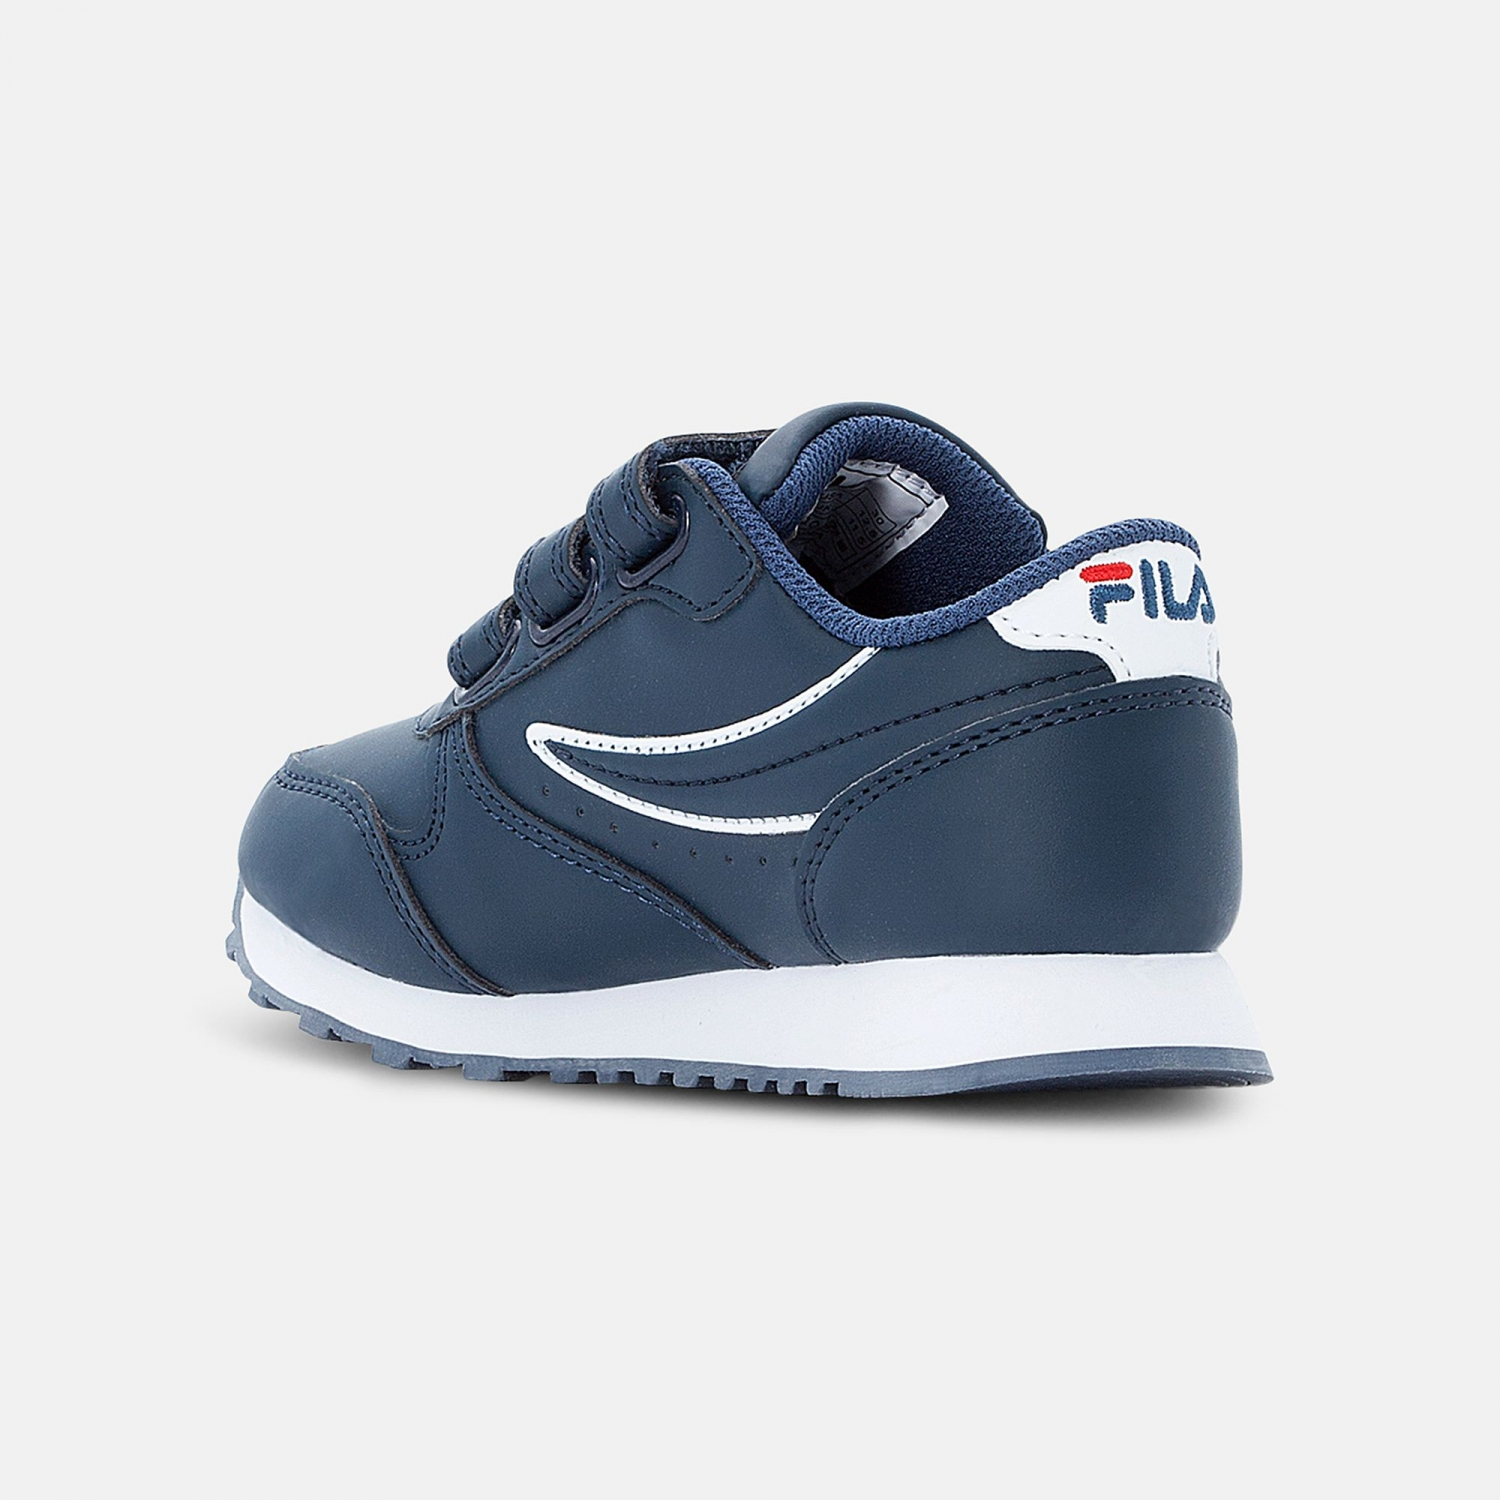 Fila Orbit Velcro Low JR  Bild 3